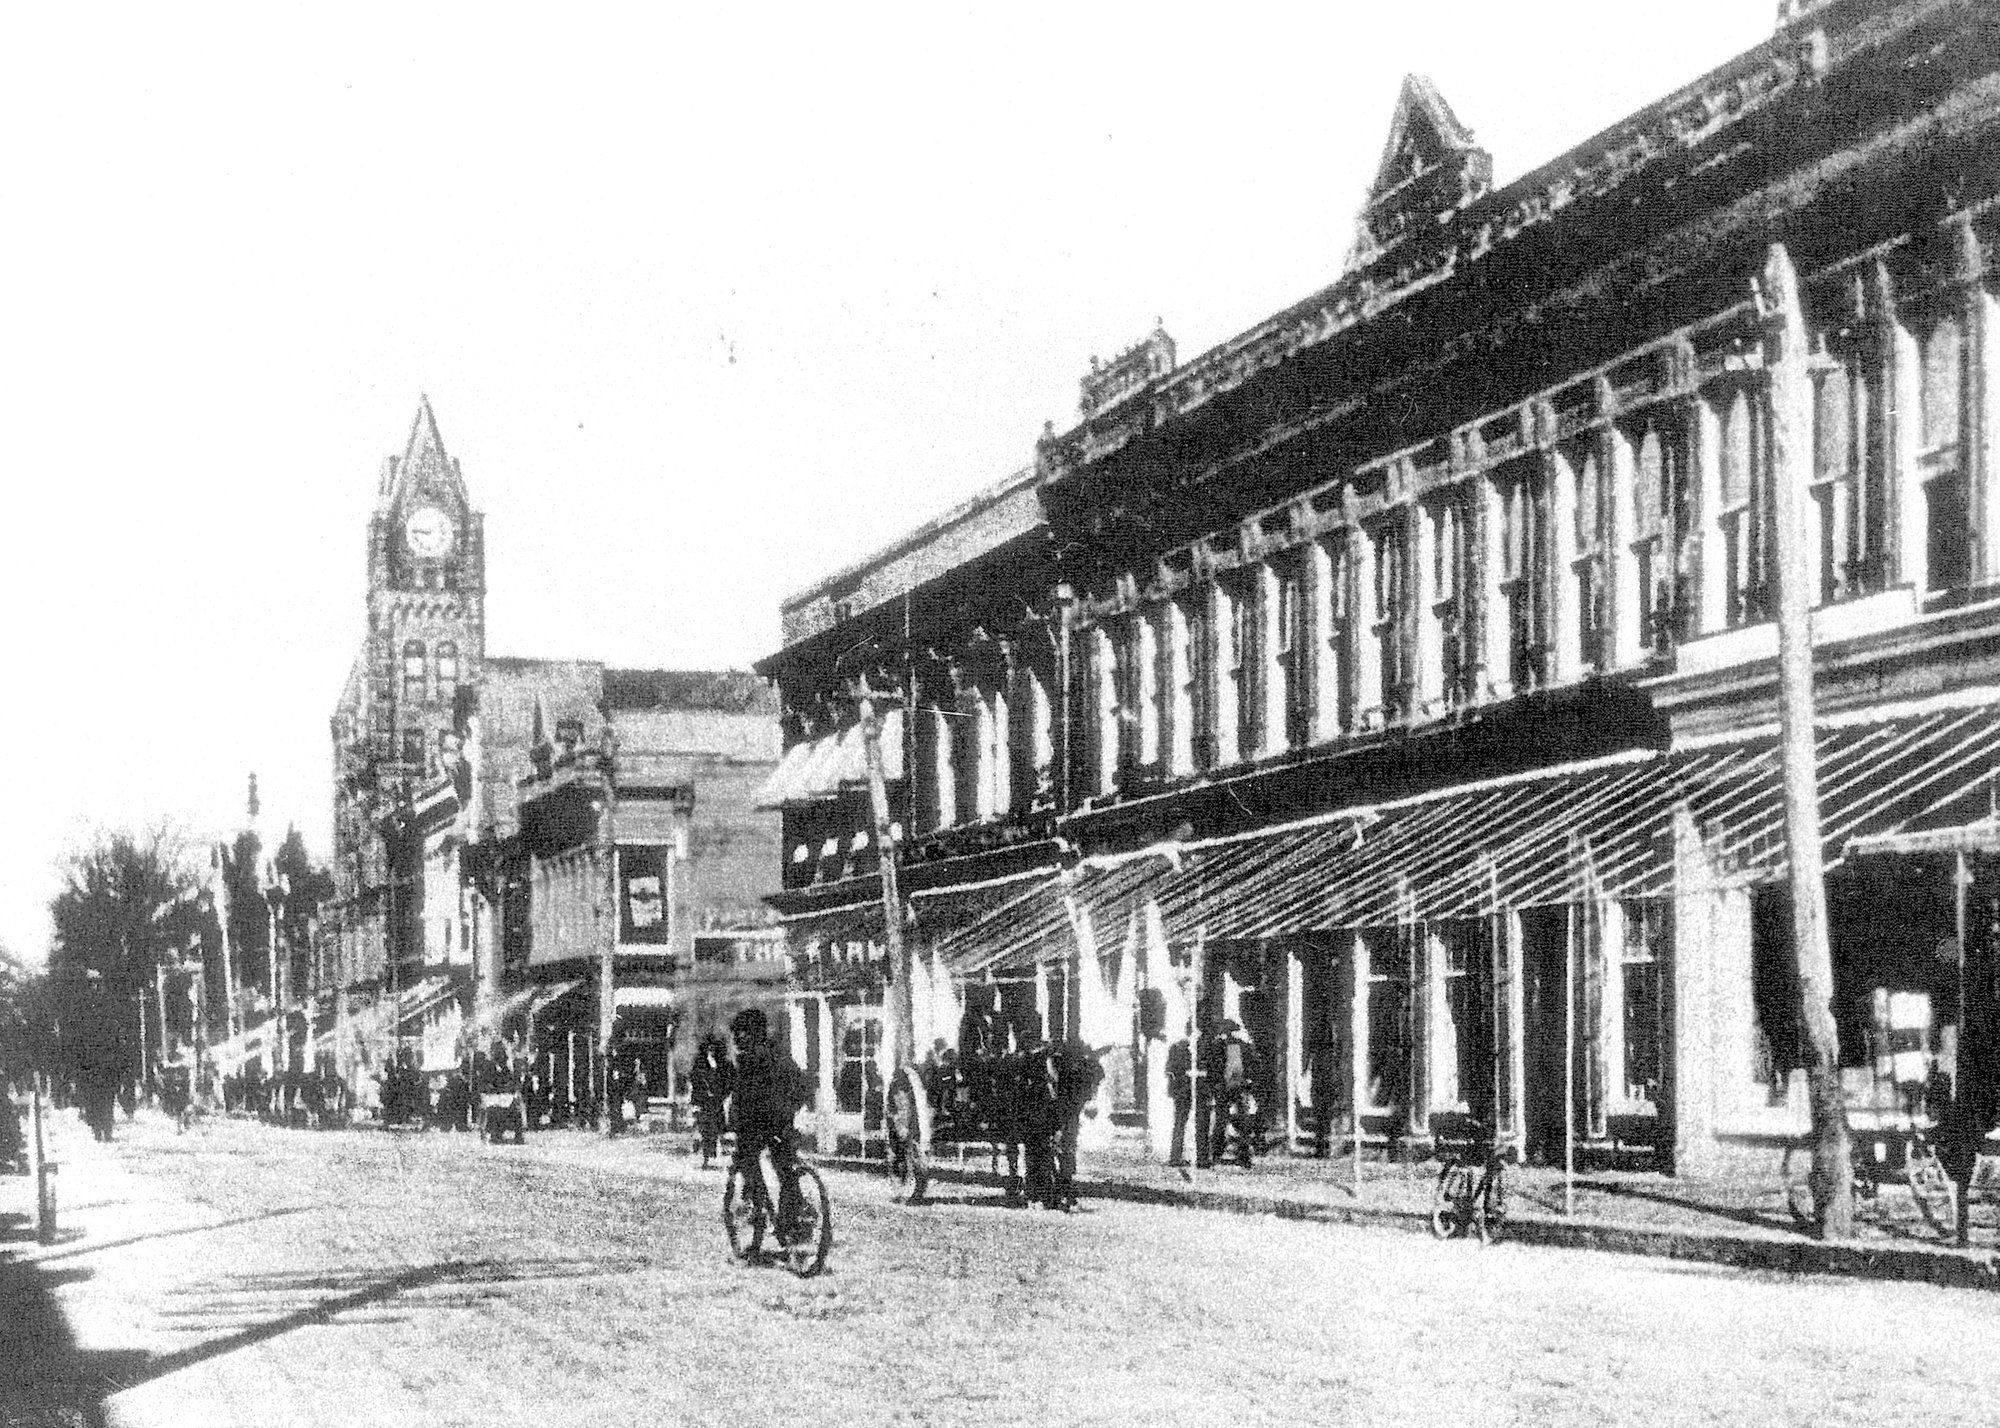 Main Street looking north from the Monaghan block is seen about 1900. Sumter Dry Goods is seen in the middle with the awnings on its windows.